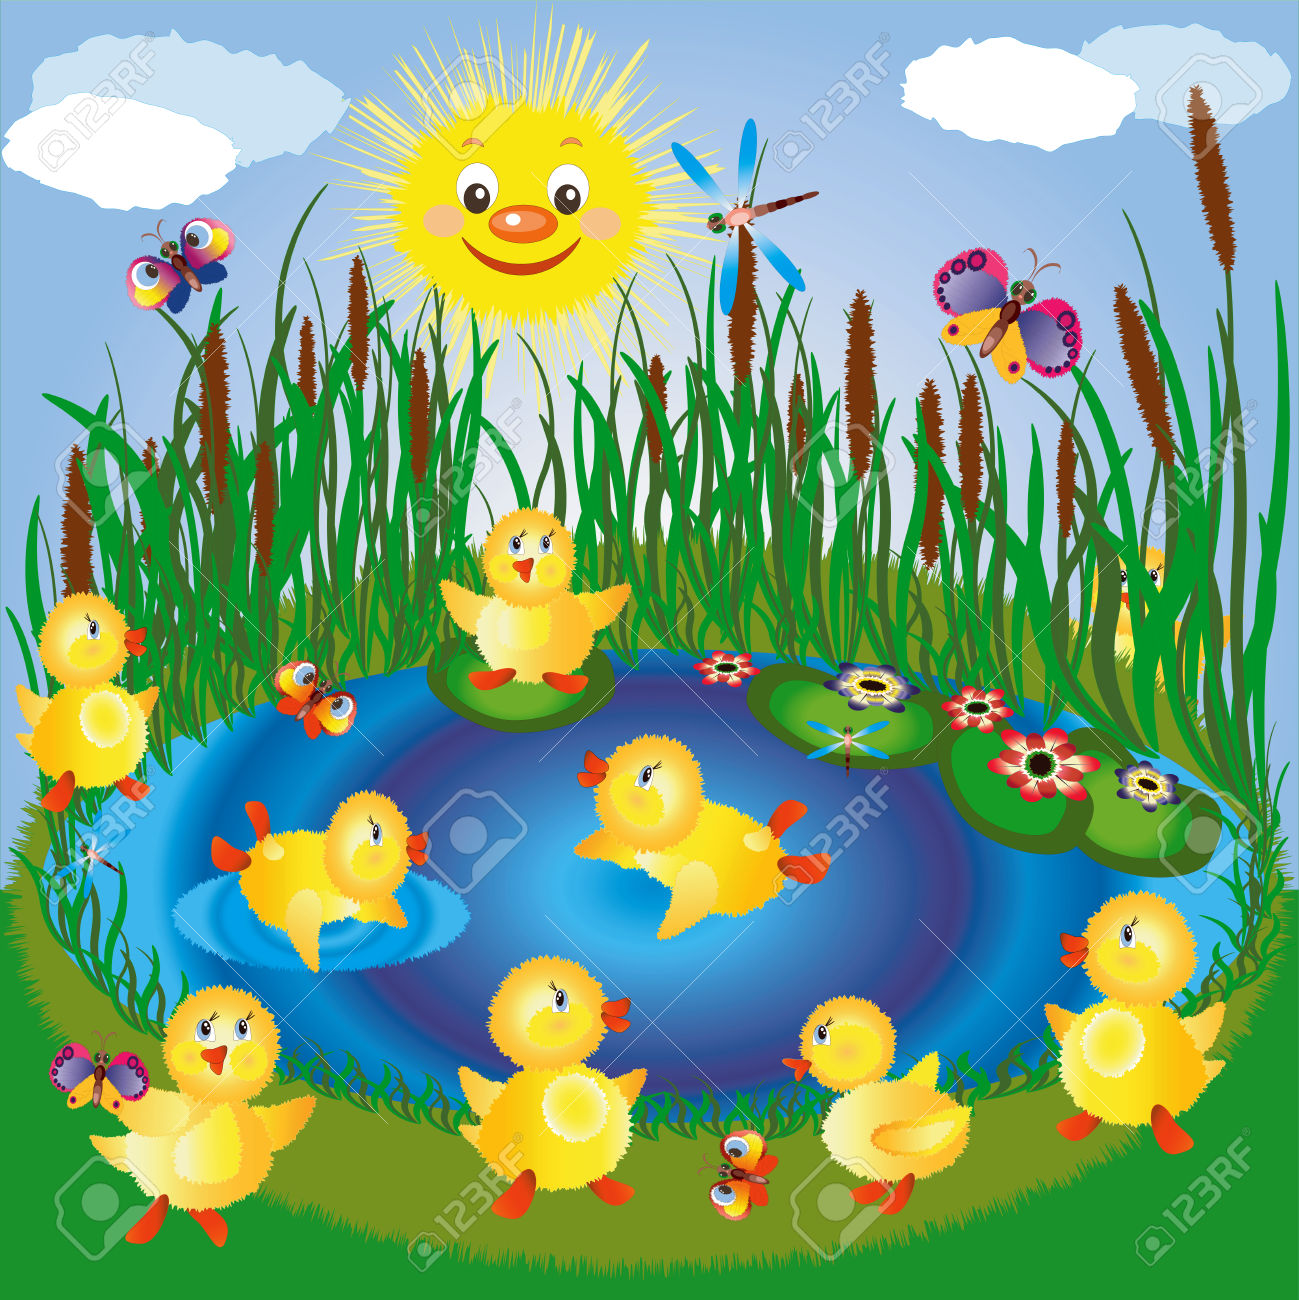 Game clipart duck pond #3